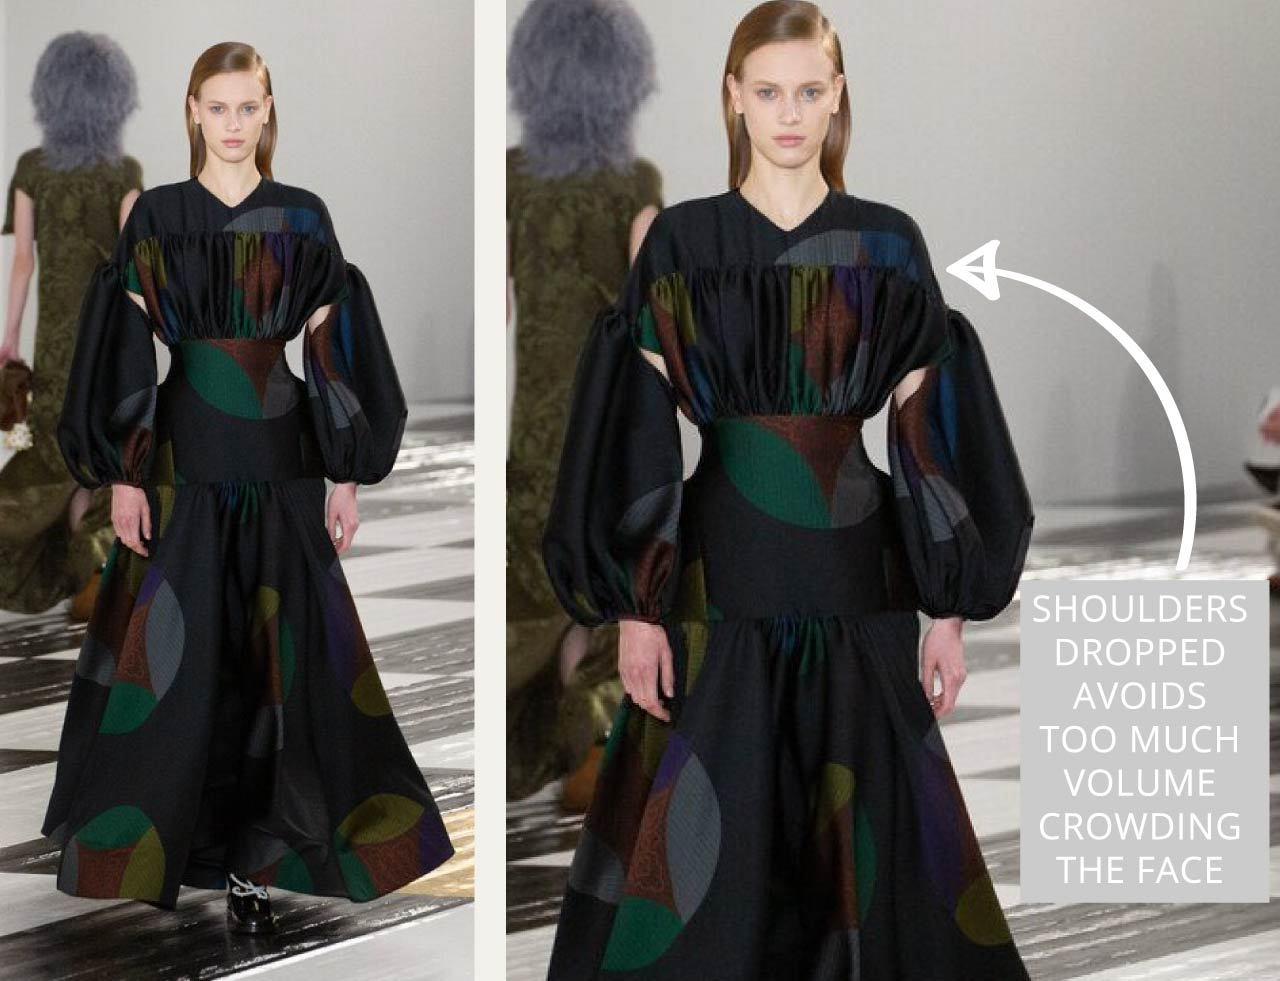 Gathering and Ceramic Plates at Loewe | The Cutting Class. Dropped shoulder avoids too much volume crowding the shoulder and face area.